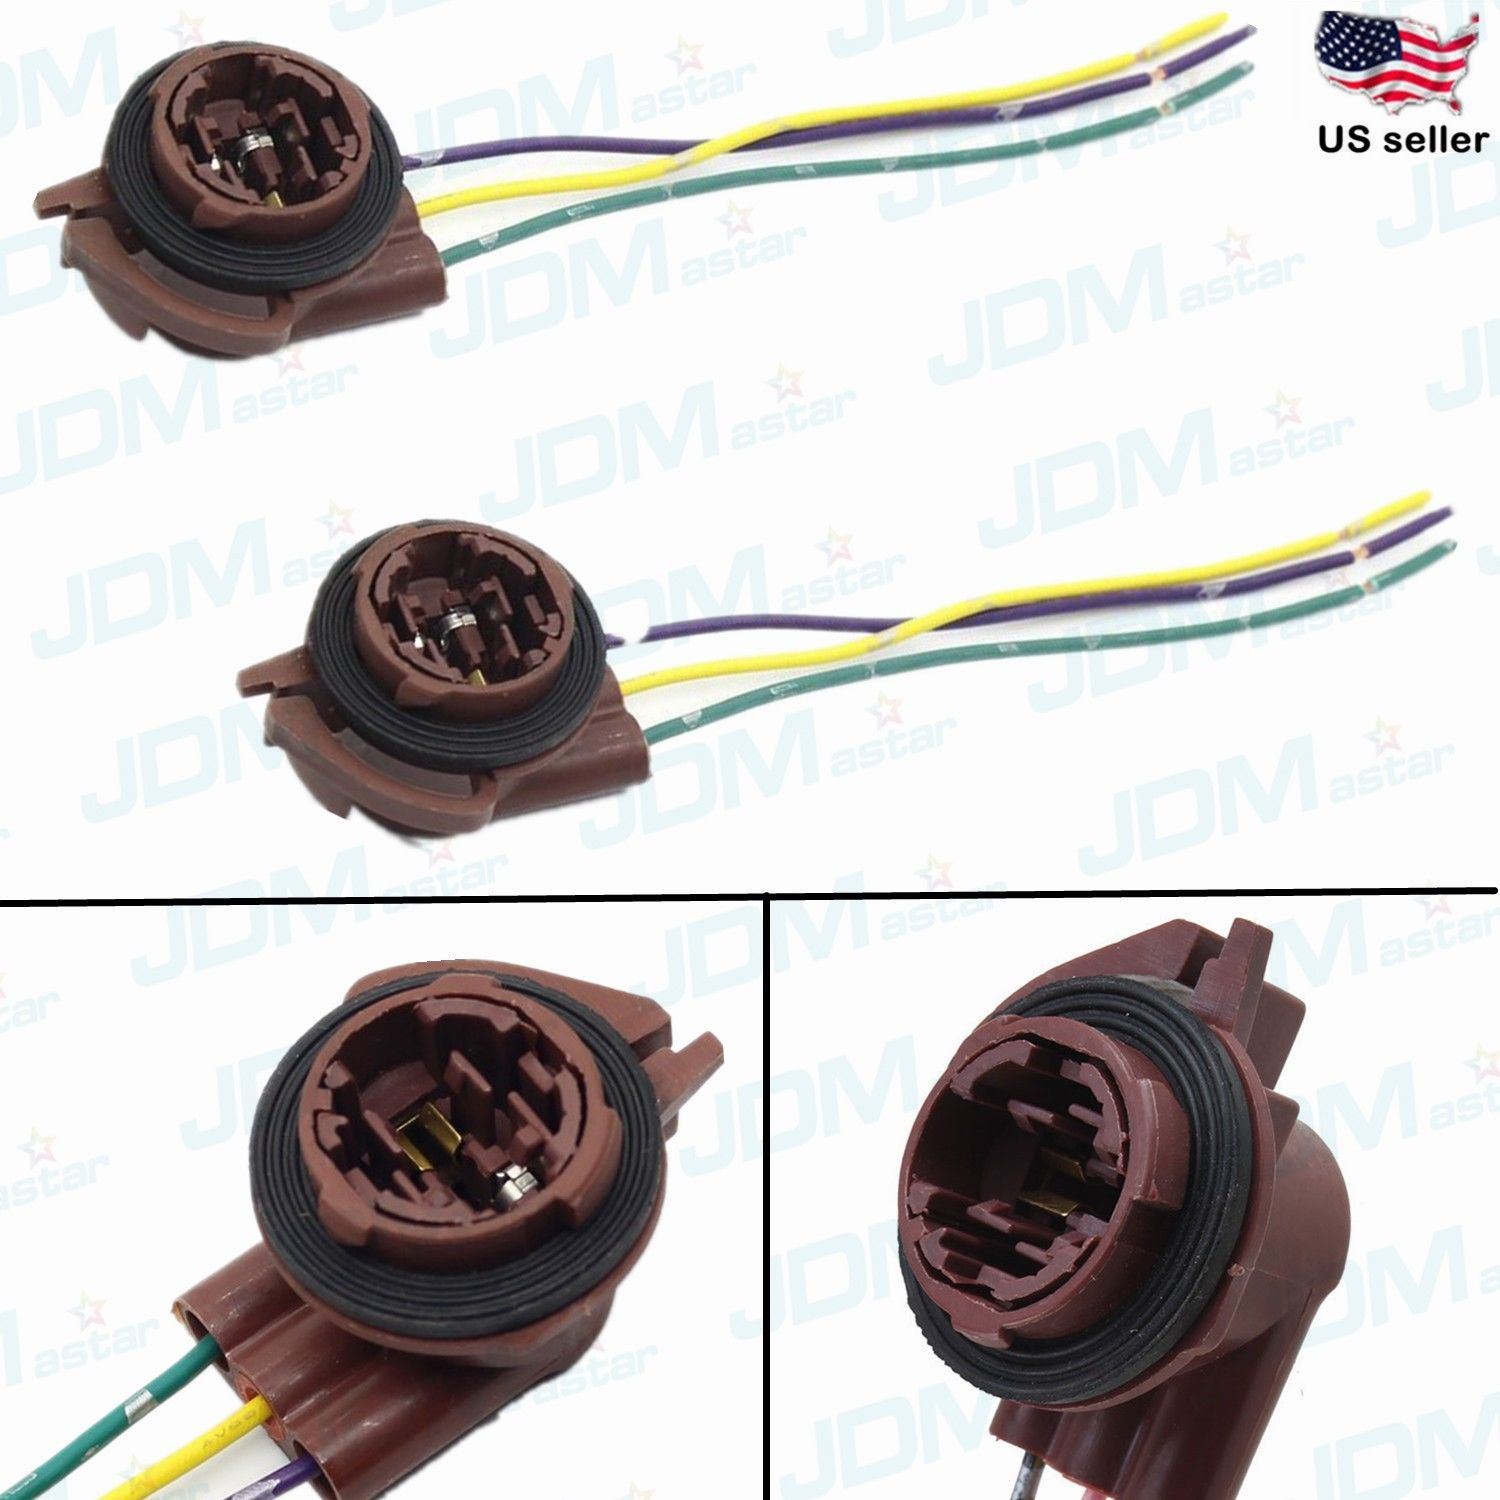 3157A socket harness 1?versionId=luZVsWTmtBB0K6WrOp6TCHwbqxcaKjlO jdm astar 3157 4157na bulb socket turn signal light harness wire 1986 Toyota 4Runner Wiring Harness at gsmportal.co